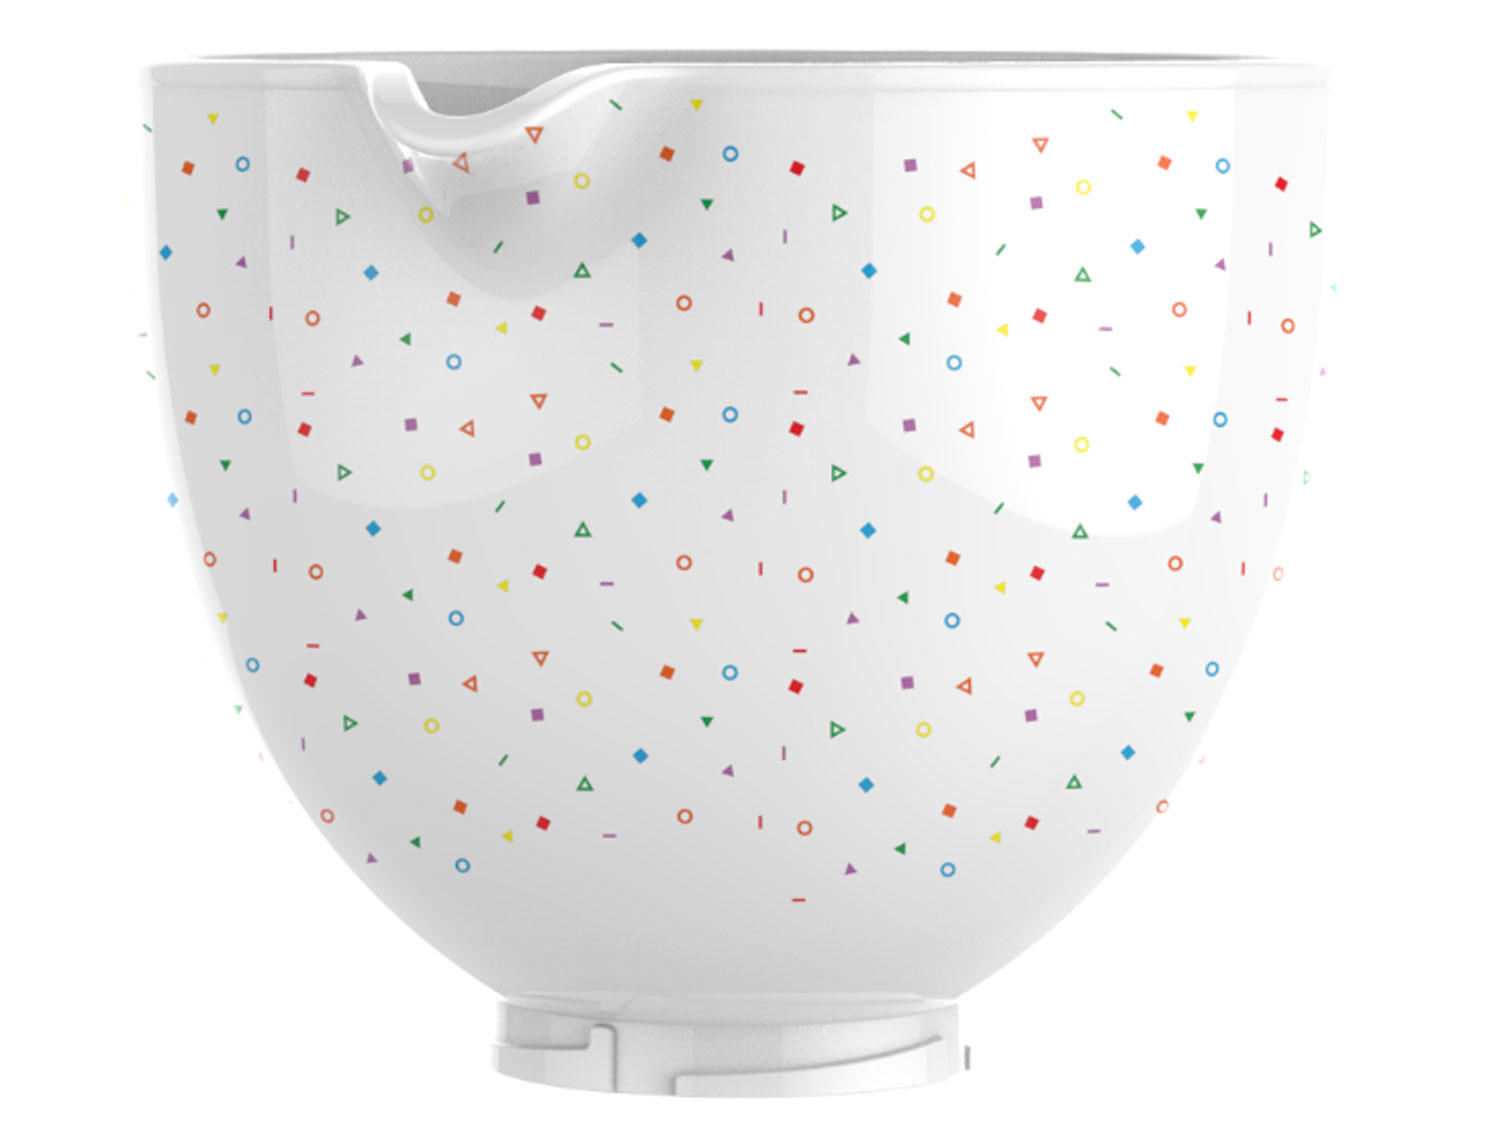 KitchenAid Is Releasing 5 New Bowl Designs, So You Can Make Your Stand Mixer Look Even Cuter KA_Confetti_Sprinkle_Bowl_Limbo-%283%29